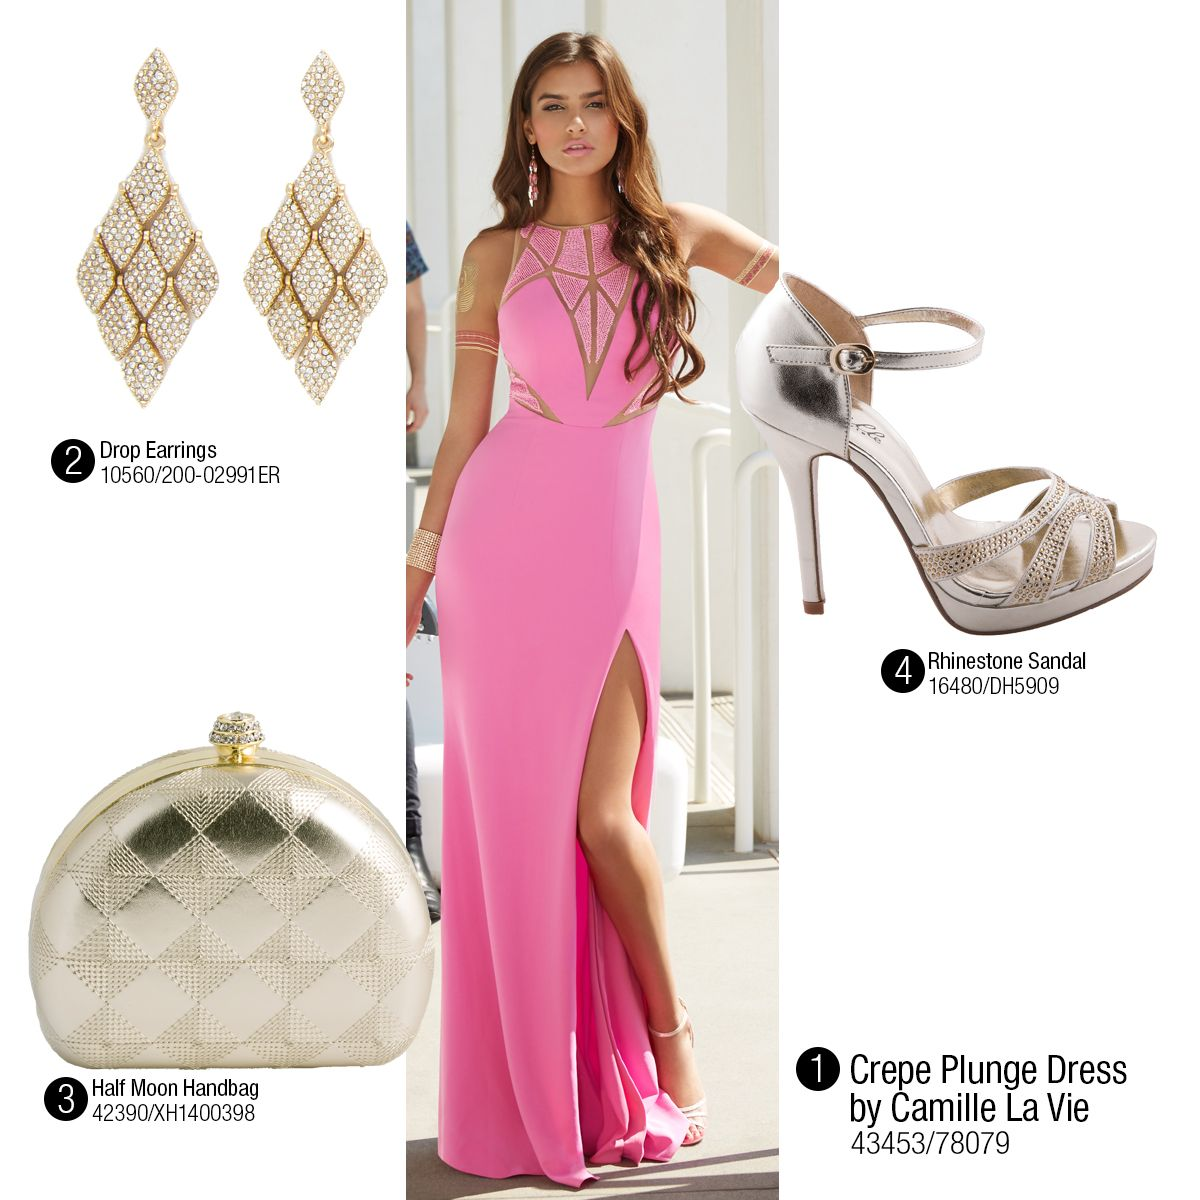 Camille La Vie Prom Dress and accessories for Prom 2016 | STYLIZED ...